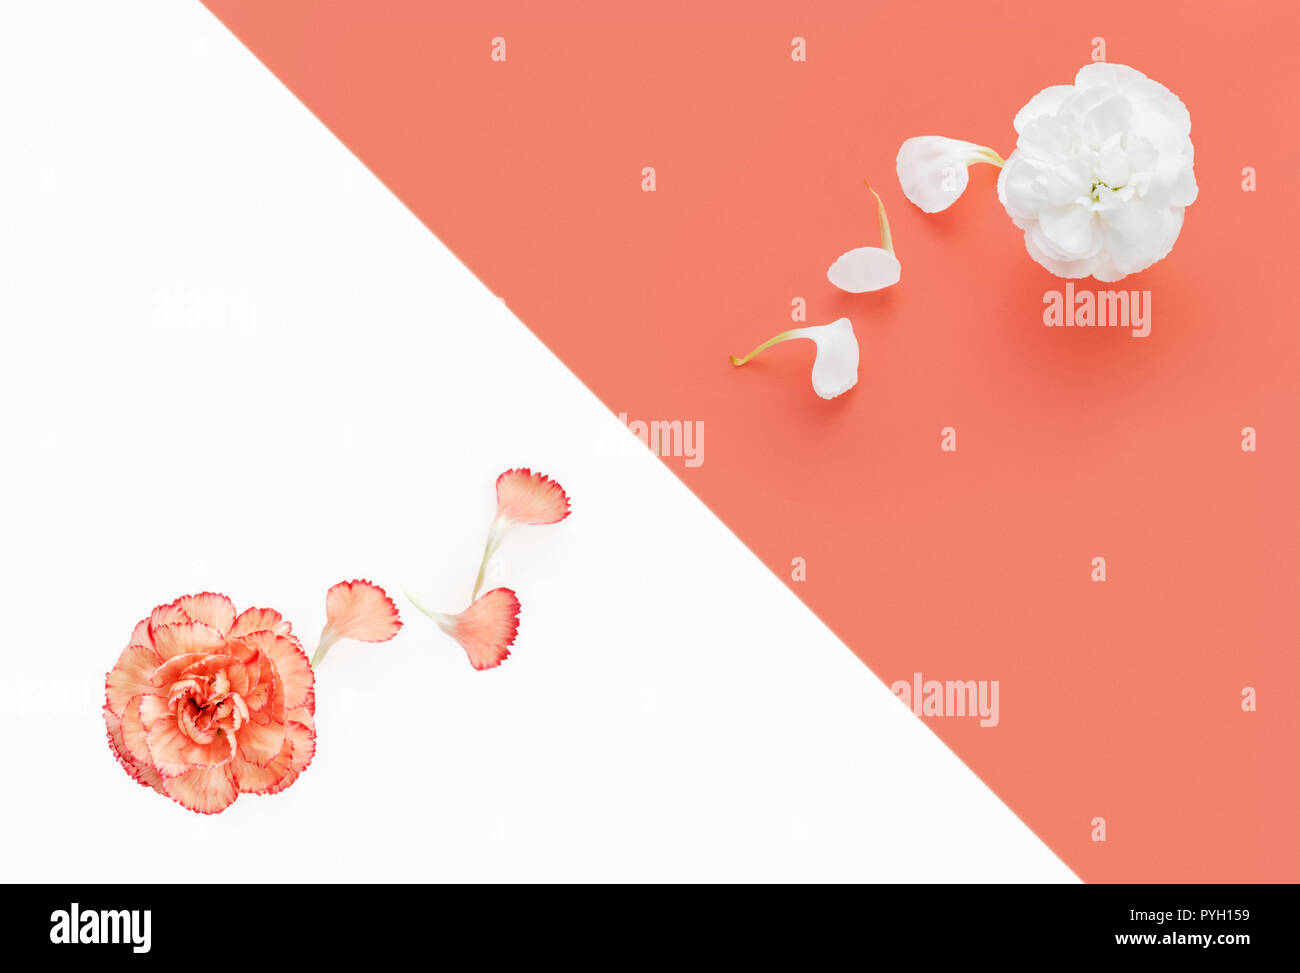 White and coral pink Carnations on duo color background - Stock Image